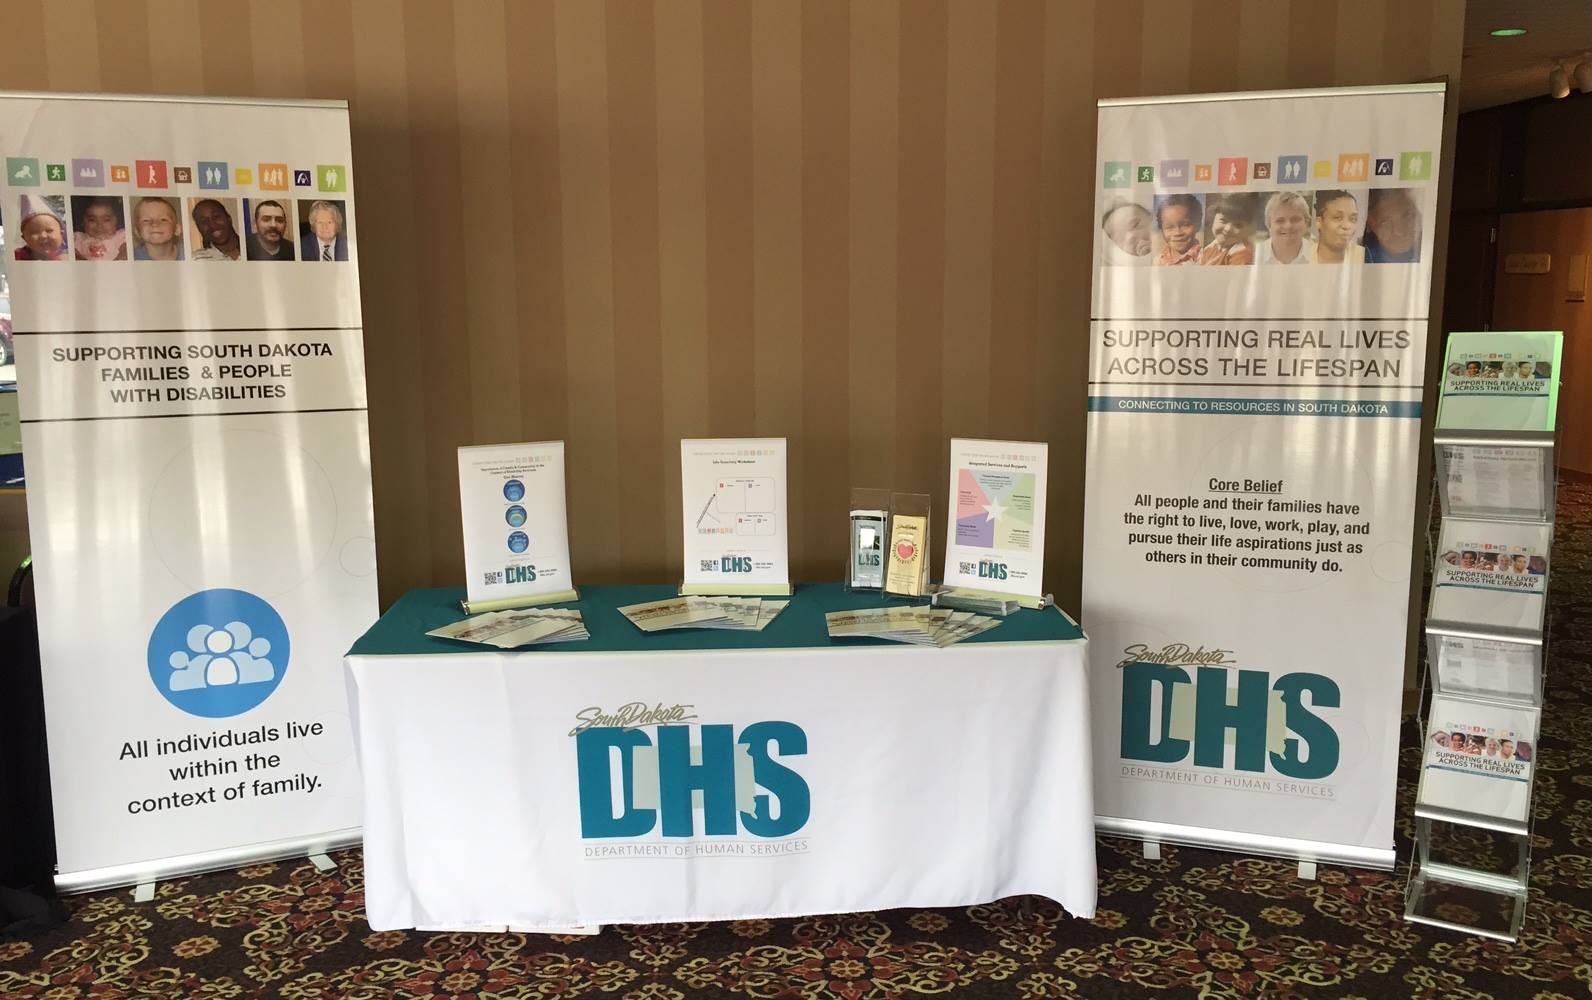 Photo: Custom display banners and booth materials using the LifeCourse framework branding developed by the South Dakota Department of Human Services